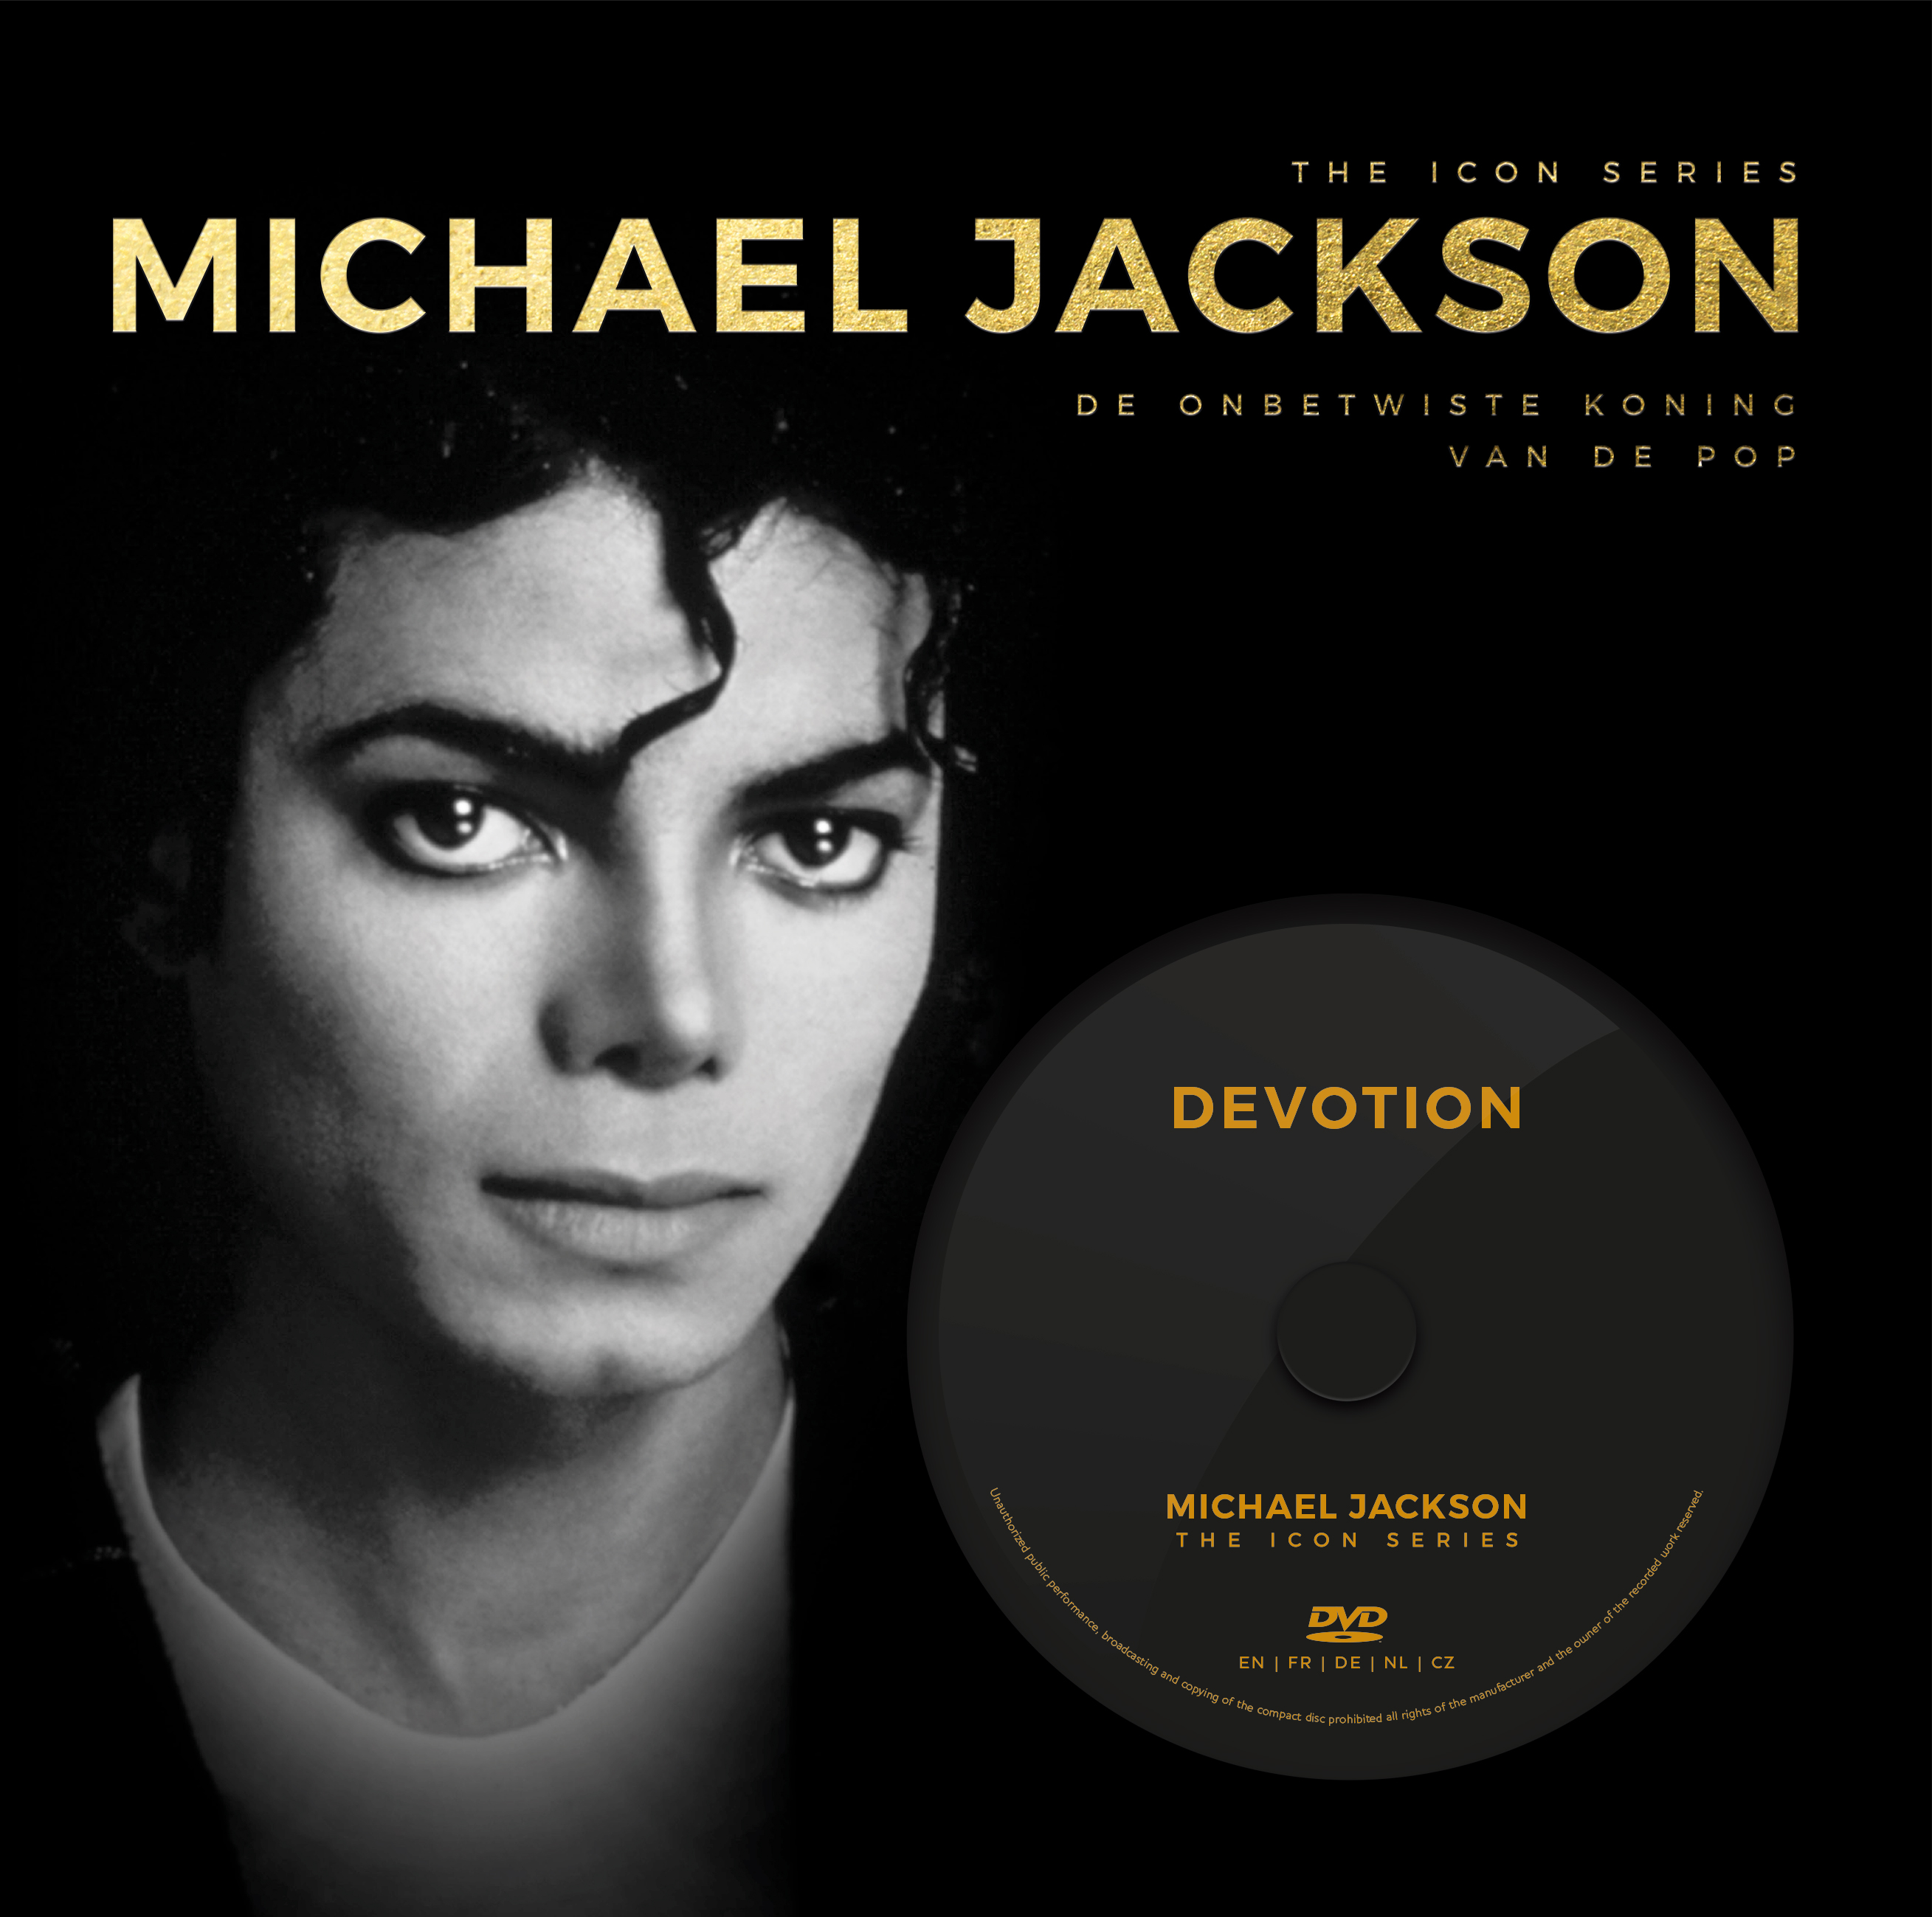 Michael Jackson-The Icon Series+DVD